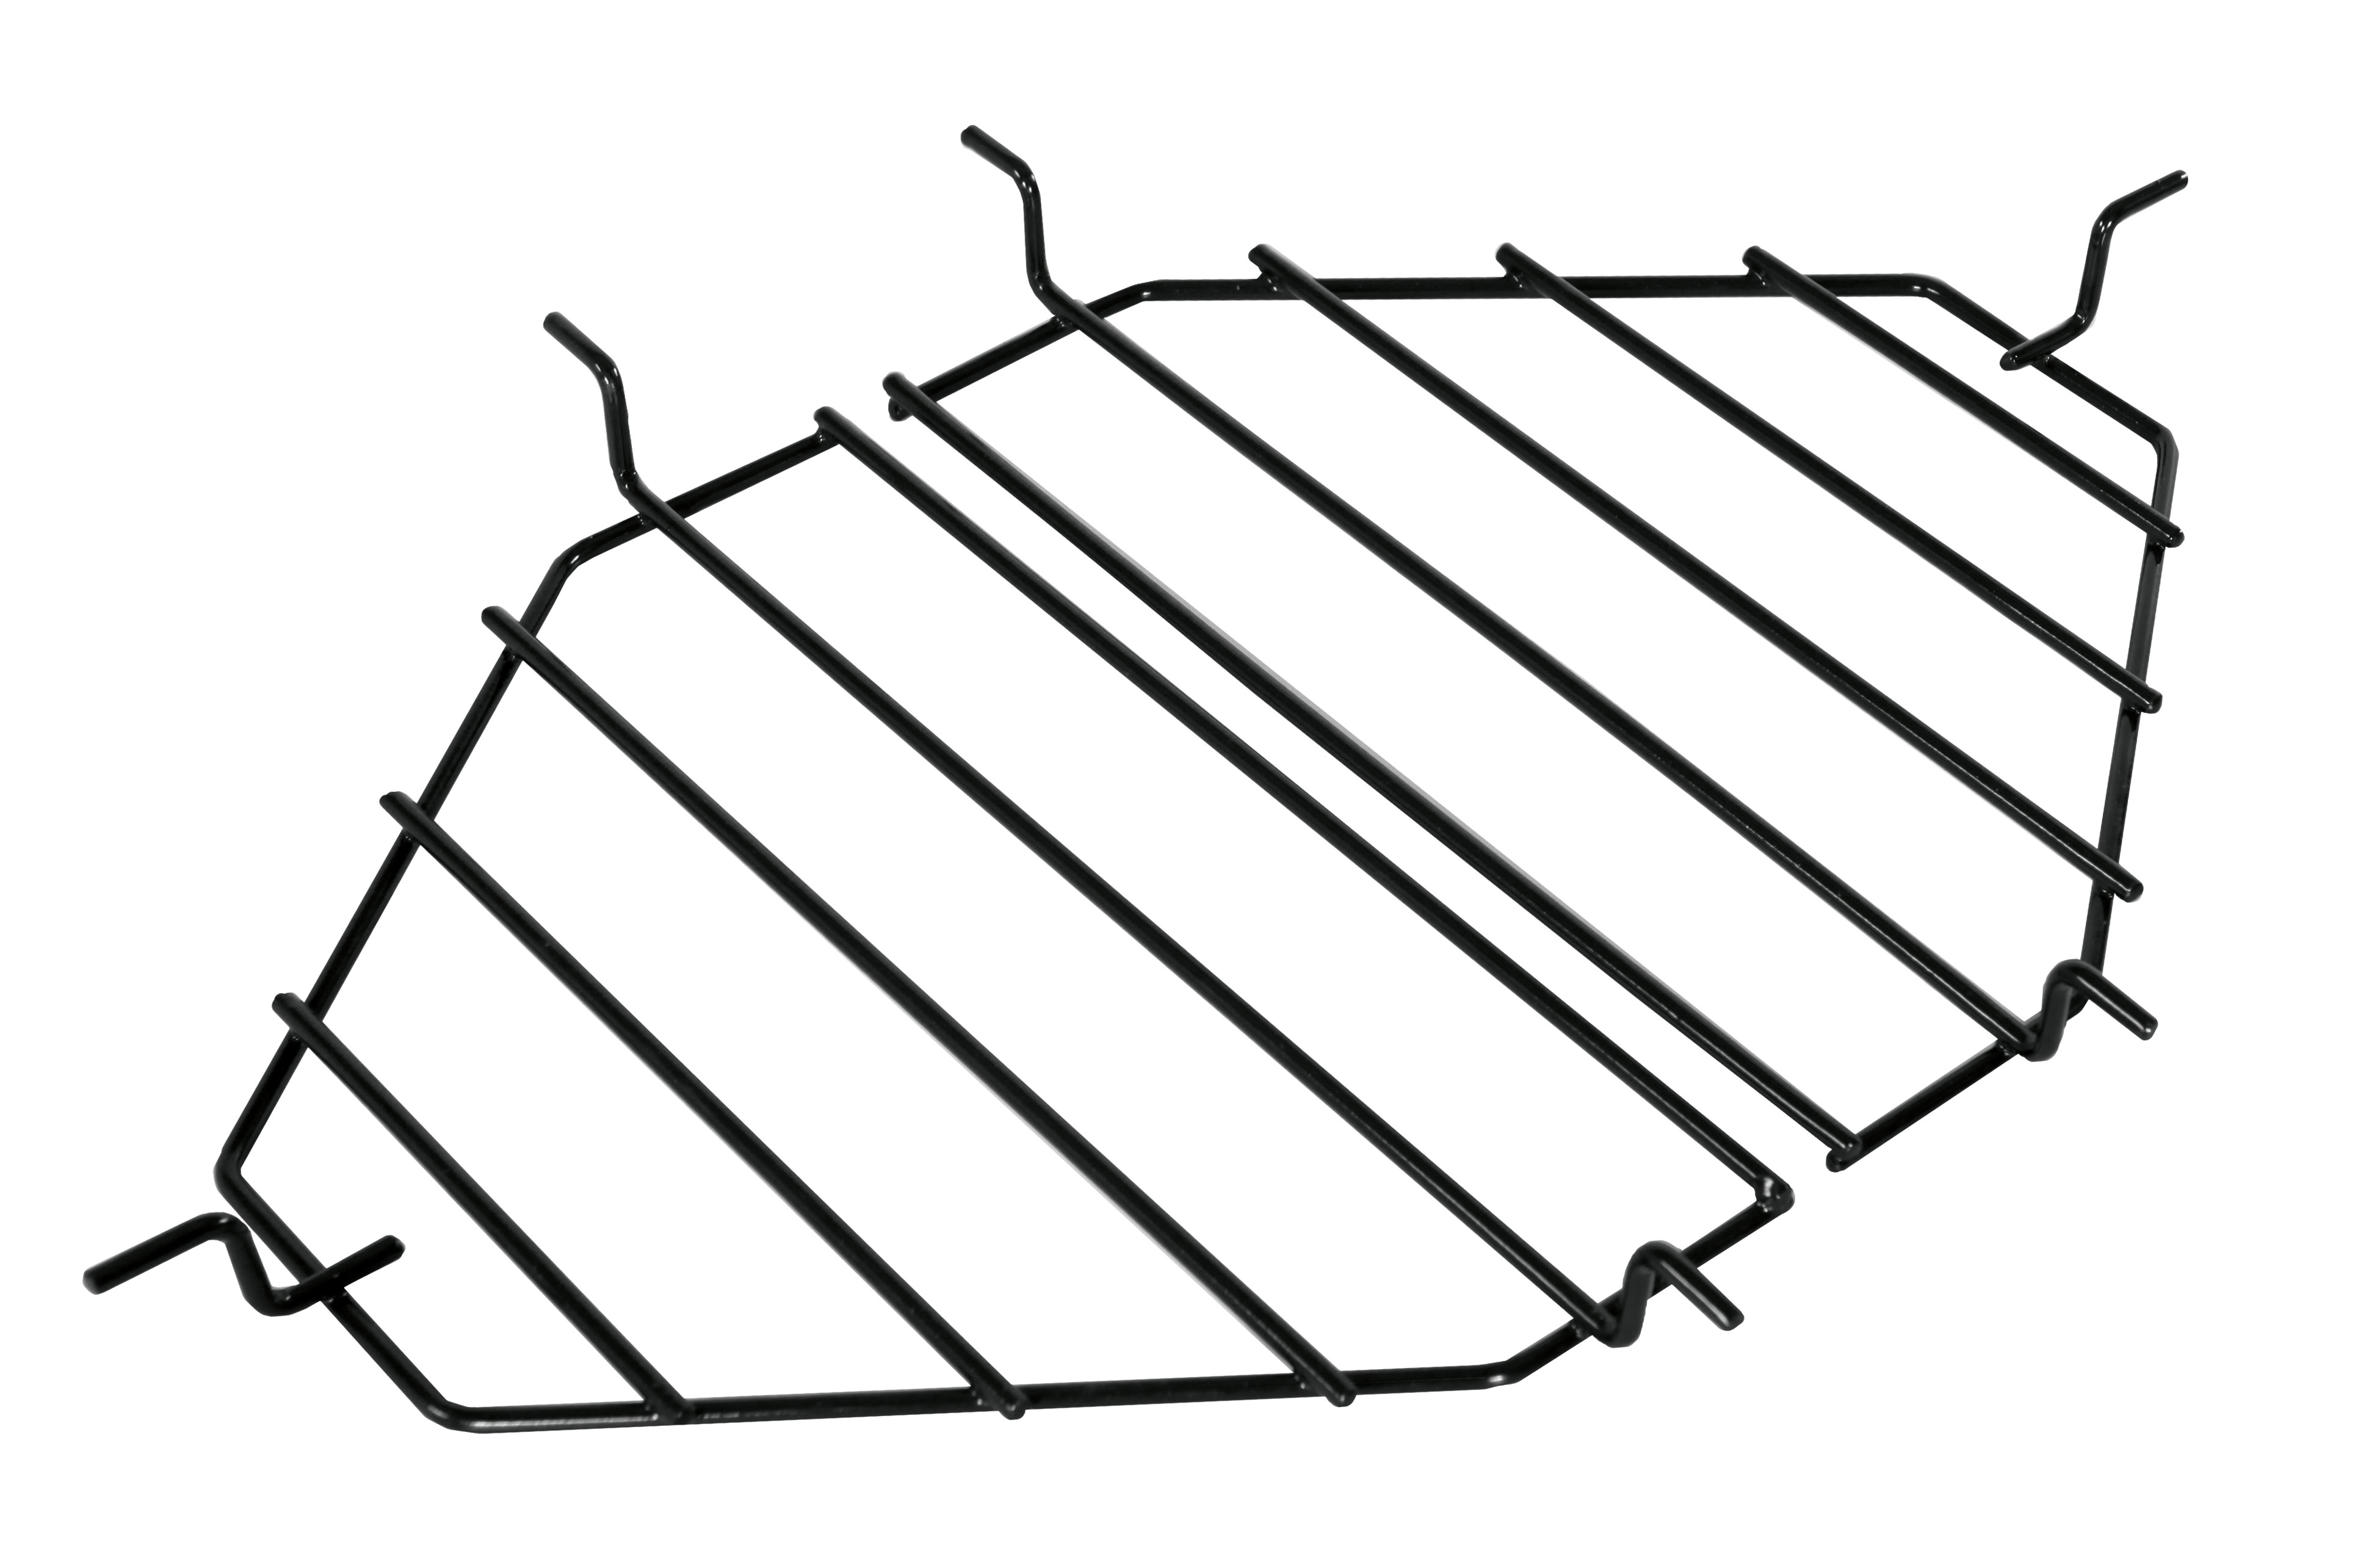 20171028042214 kitchenaid Grill Parts additionally Cookware moreover 20171028042214 kitchenaid Grill Parts besides 192084802376 likewise Top 20 Best Grill Baskets. on bbq griddle